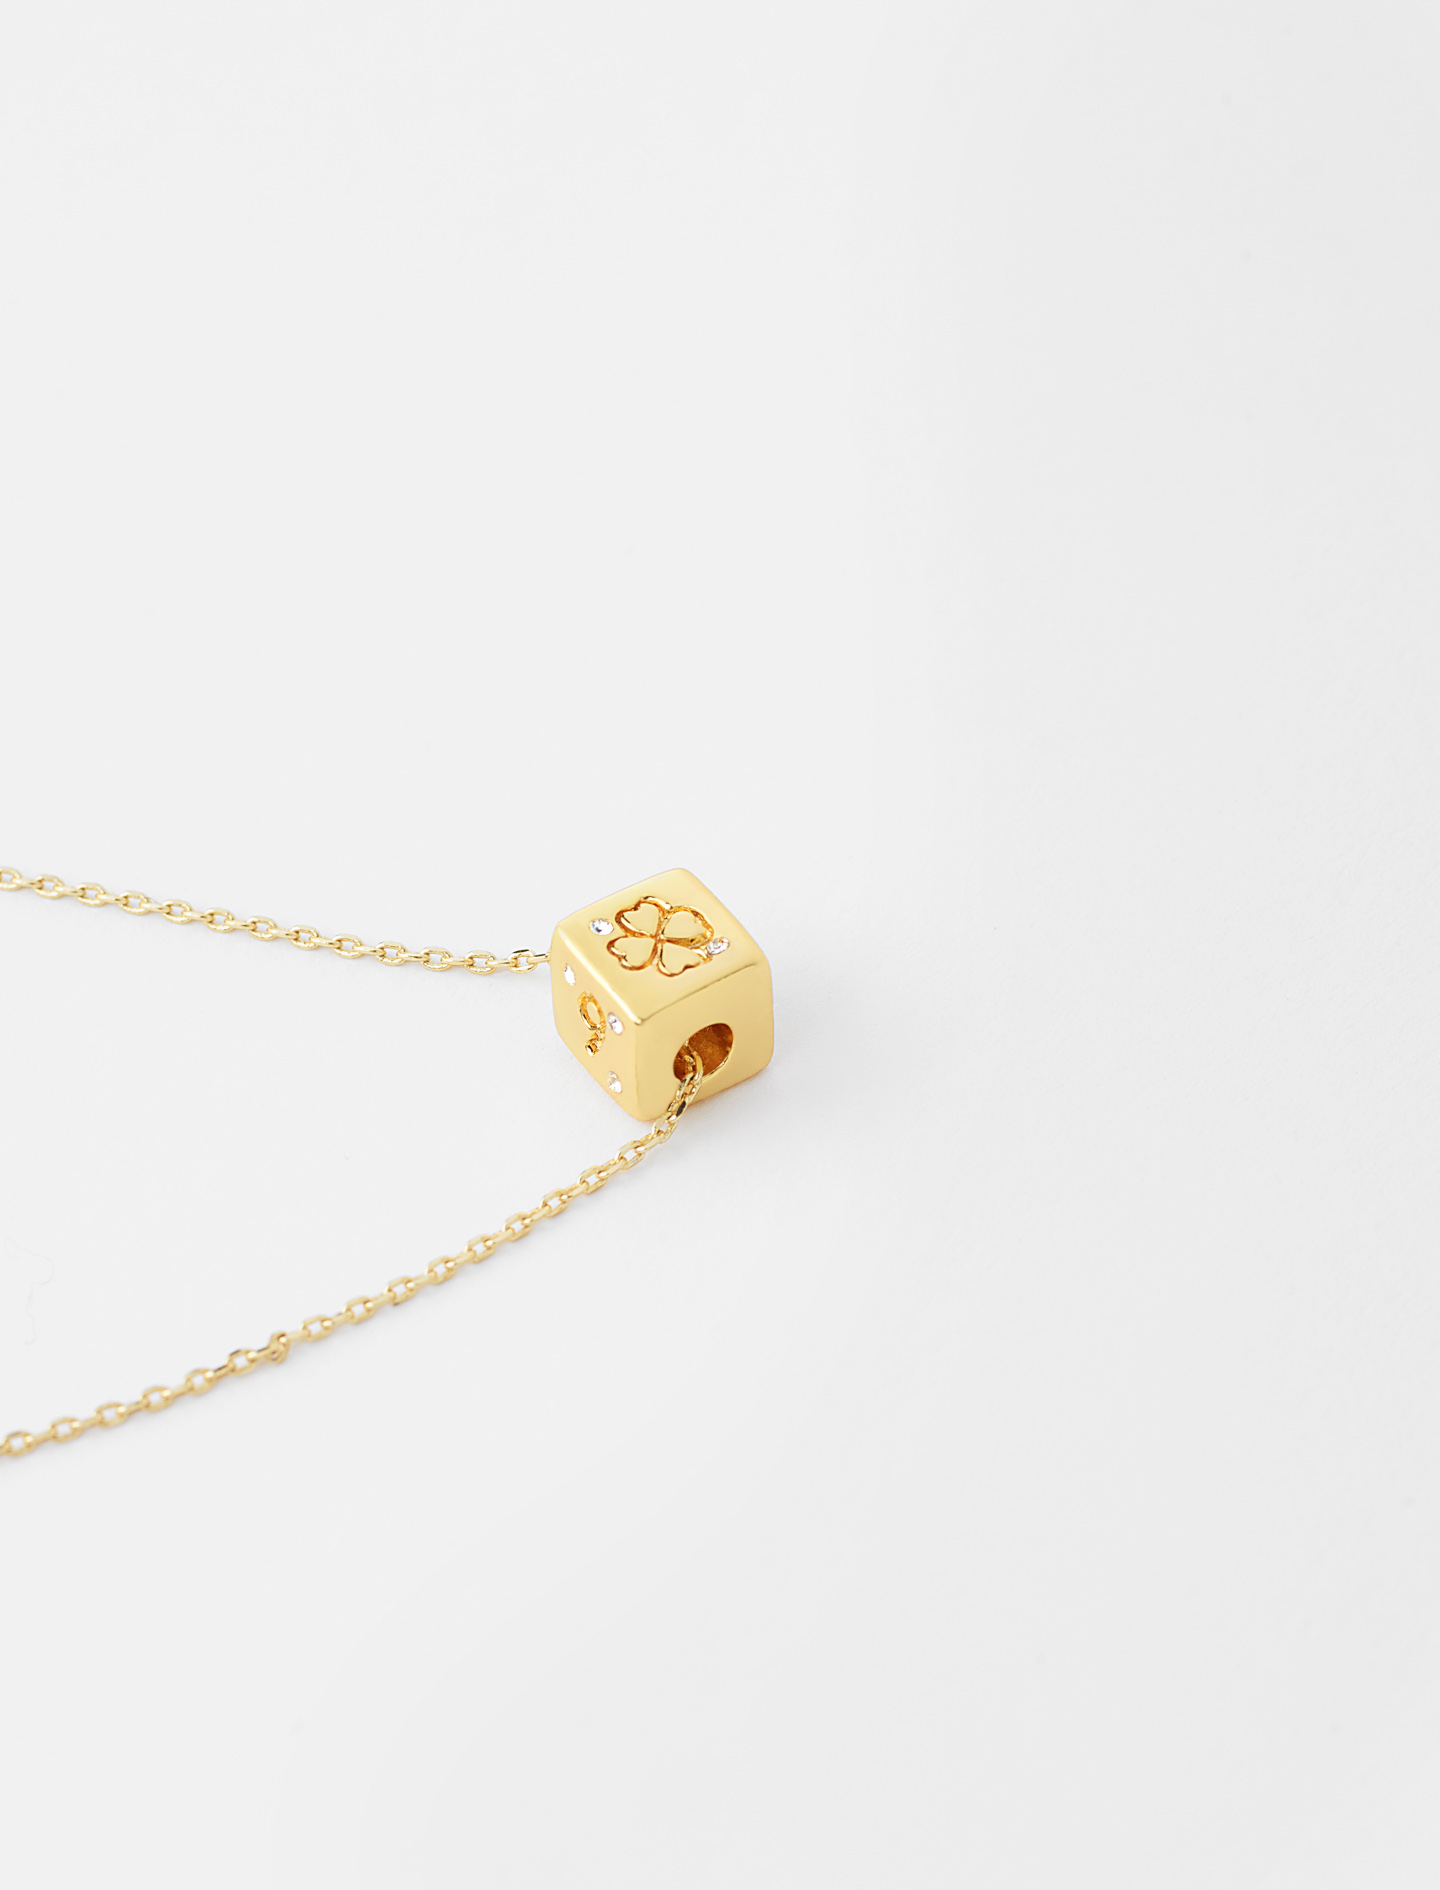 Number 6 or 9 dice necklace - Gold